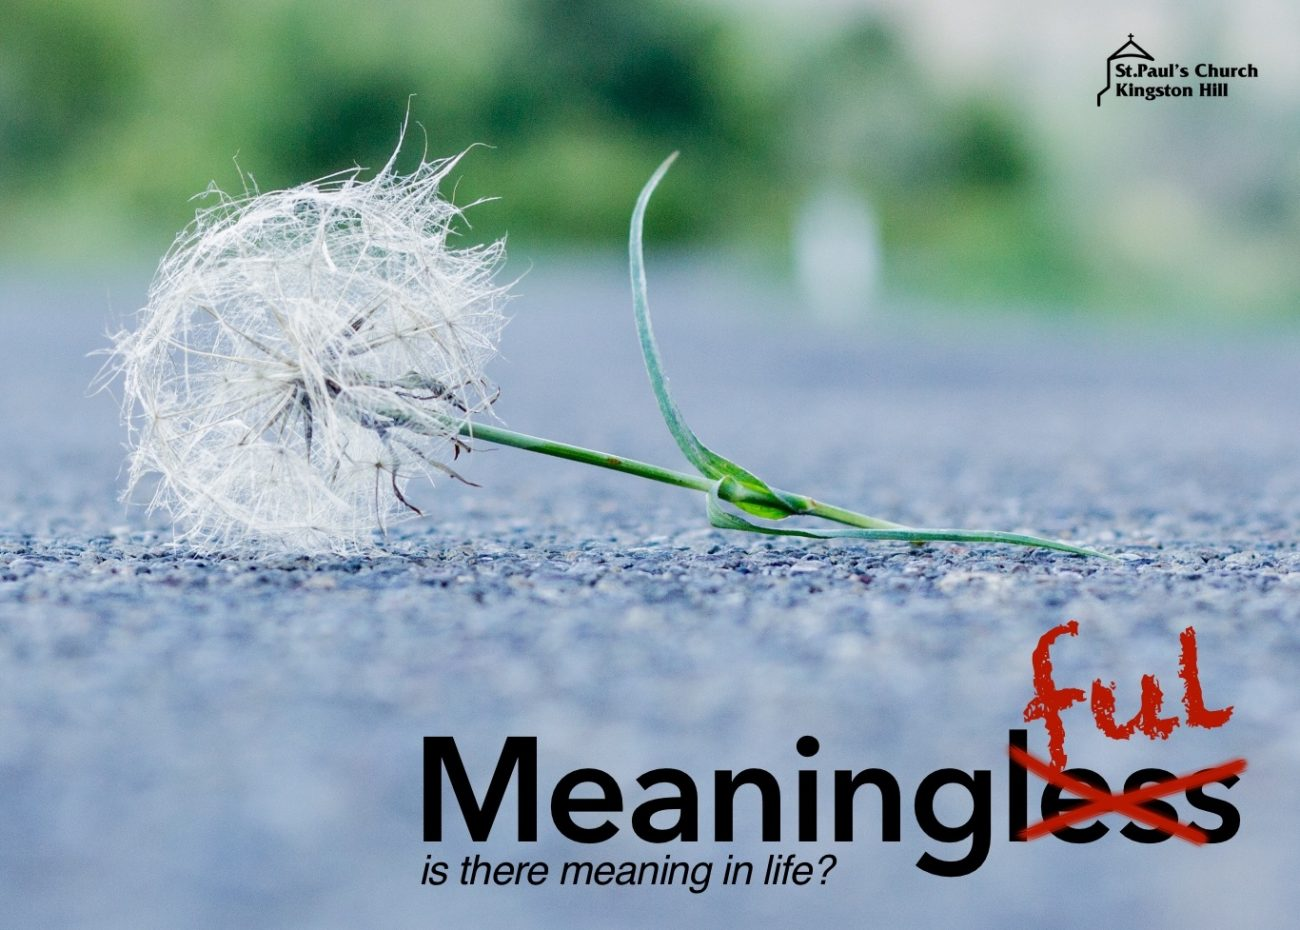 Meaningless, Meaningful